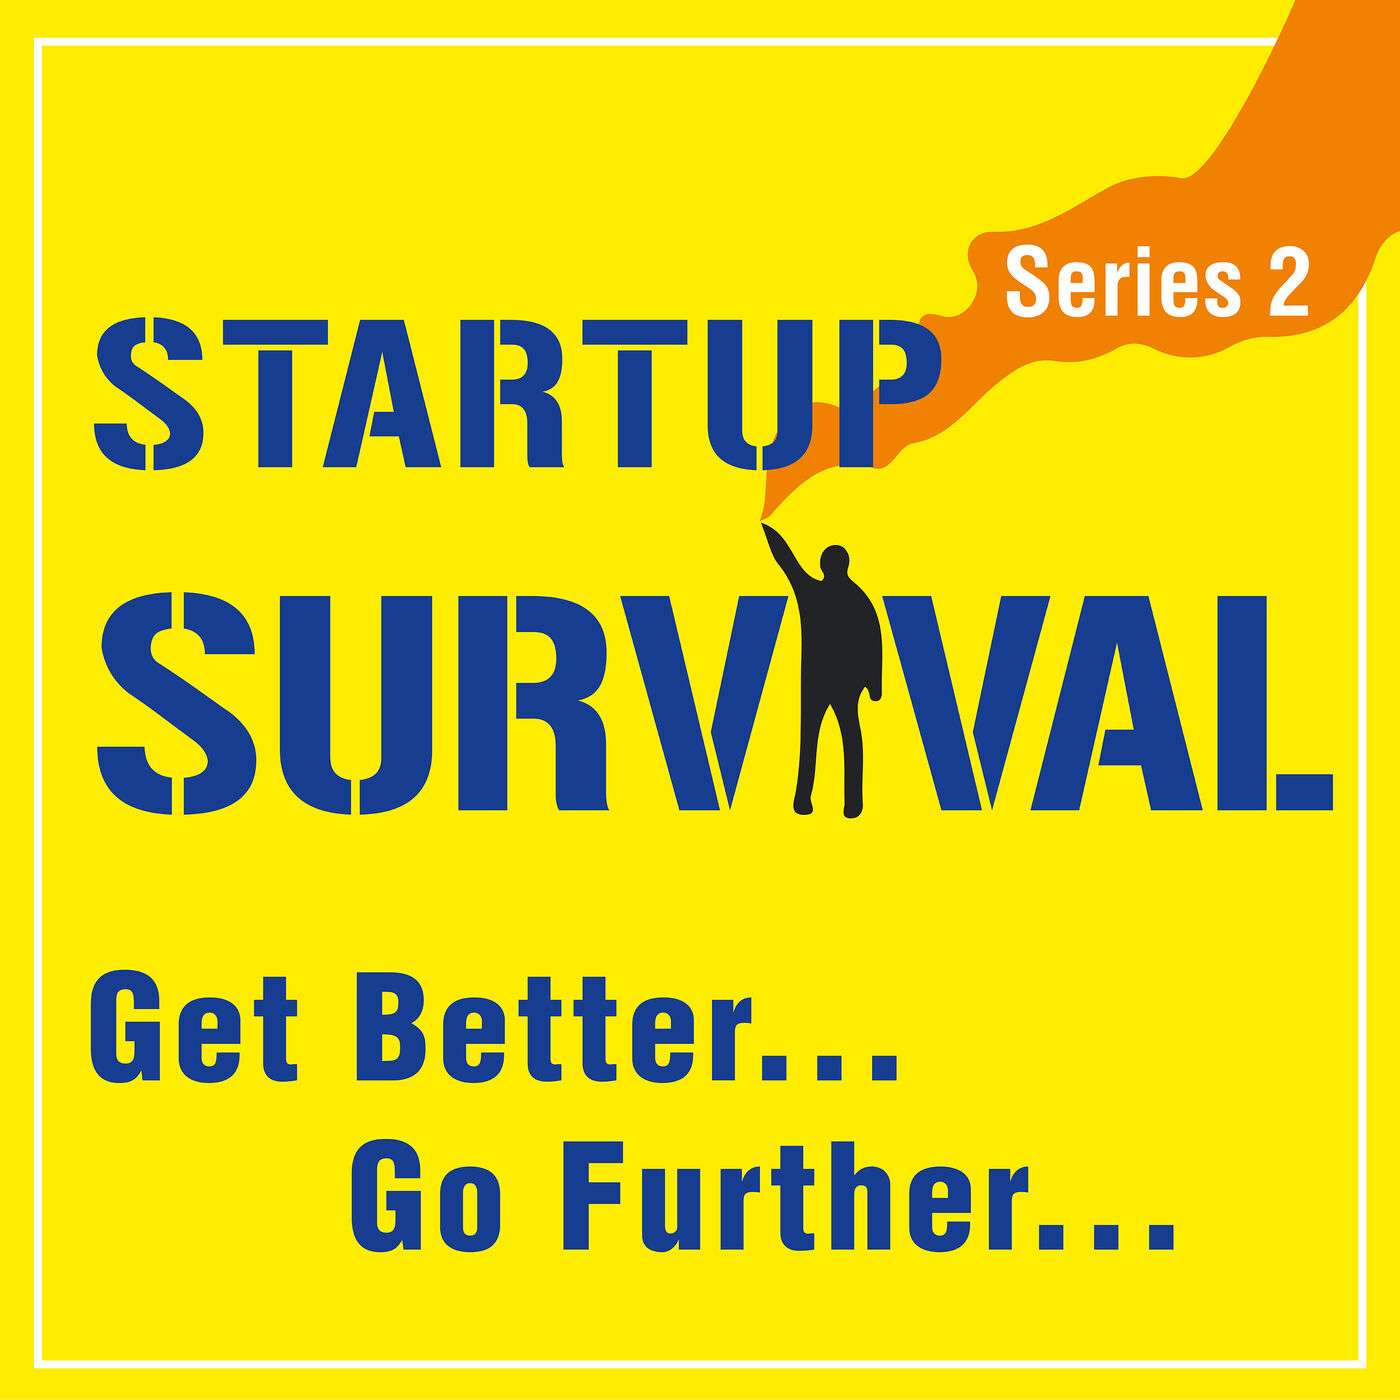 Episode 1 - Know Your Entrepreneurial Self